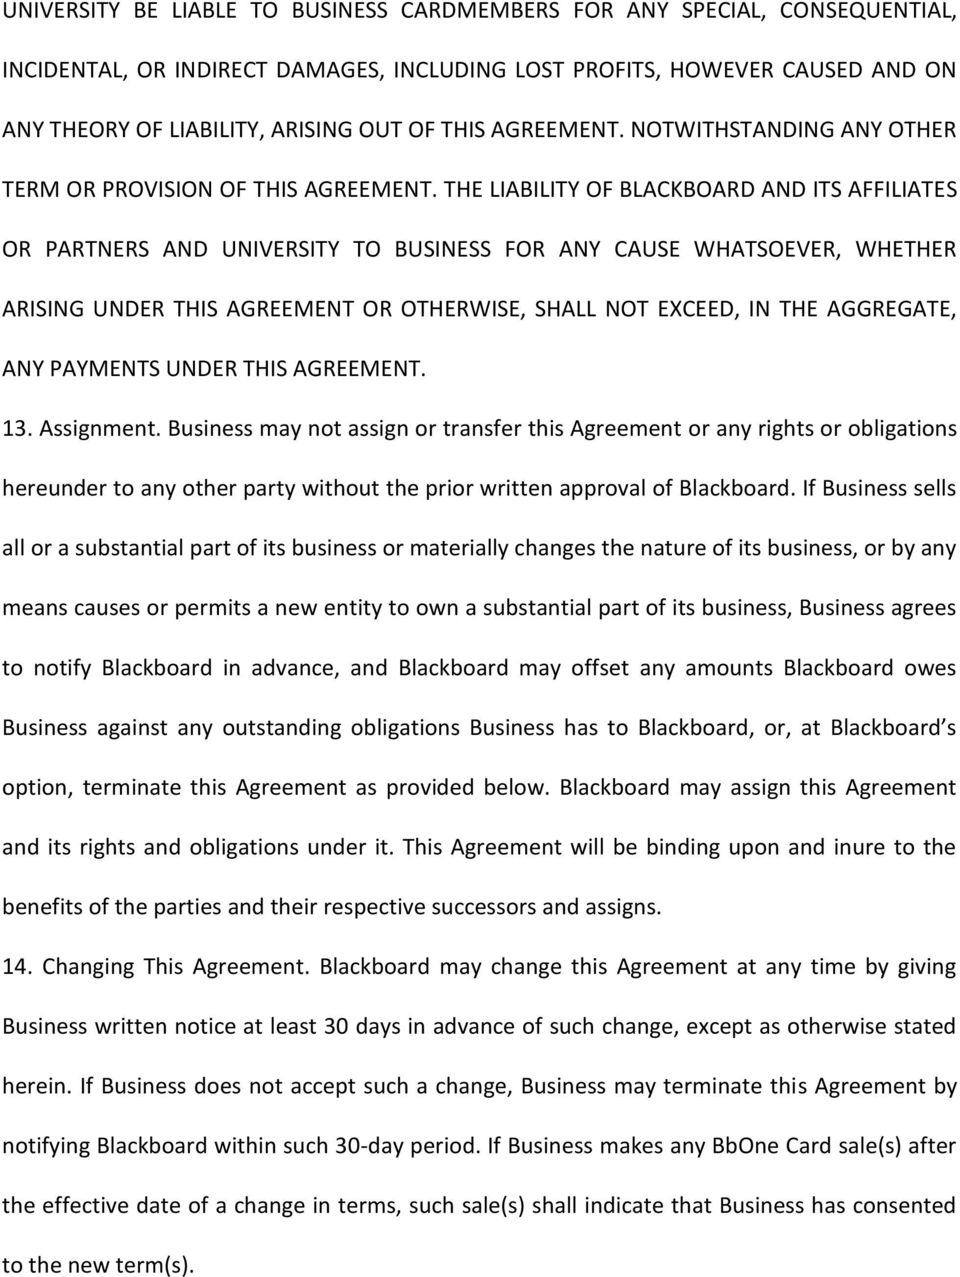 THE LIABILITY OF BLACKBOARD AND ITS AFFILIATES OR PARTNERS AND UNIVERSITY TO BUSINESS FOR ANY CAUSE WHATSOEVER, WHETHER ARISING UNDER THIS AGREEMENT OR OTHERWISE, SHALL NOT EXCEED, IN THE AGGREGATE,